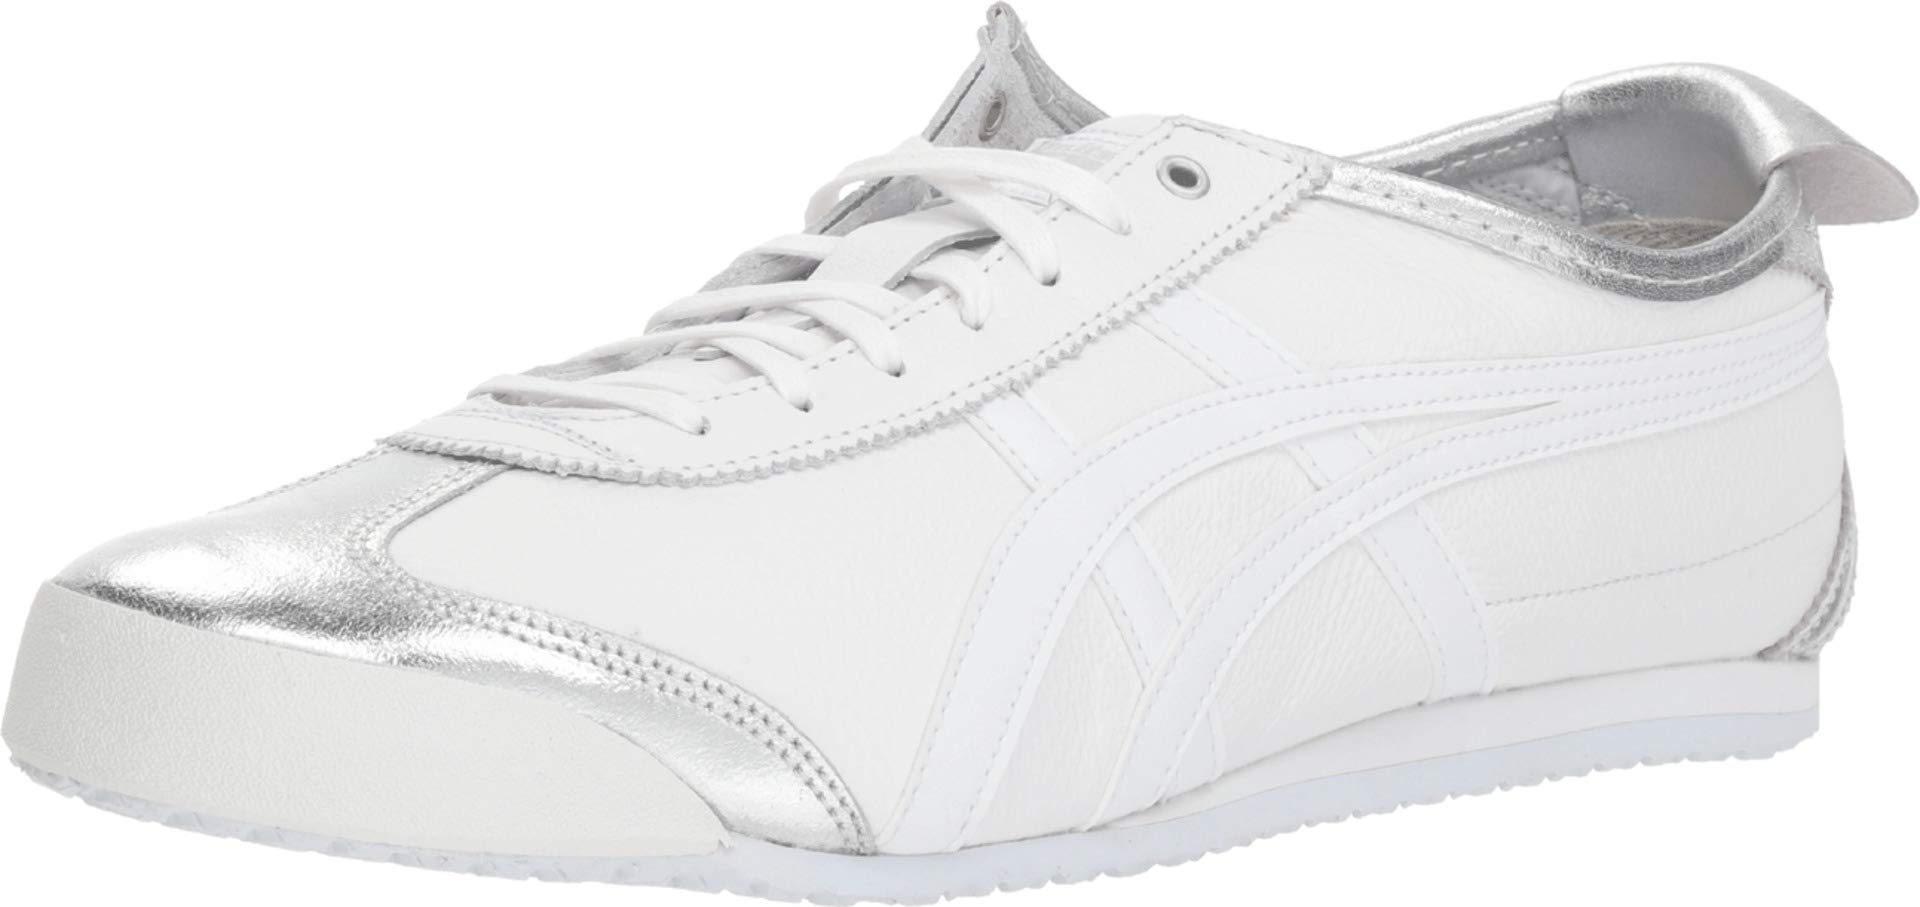 sports shoes 24a61 29ebd Onitsuka Tiger by Asics Unisex Mexico 66 Silver/White 11 Women / 9.5 Men M  US Medium